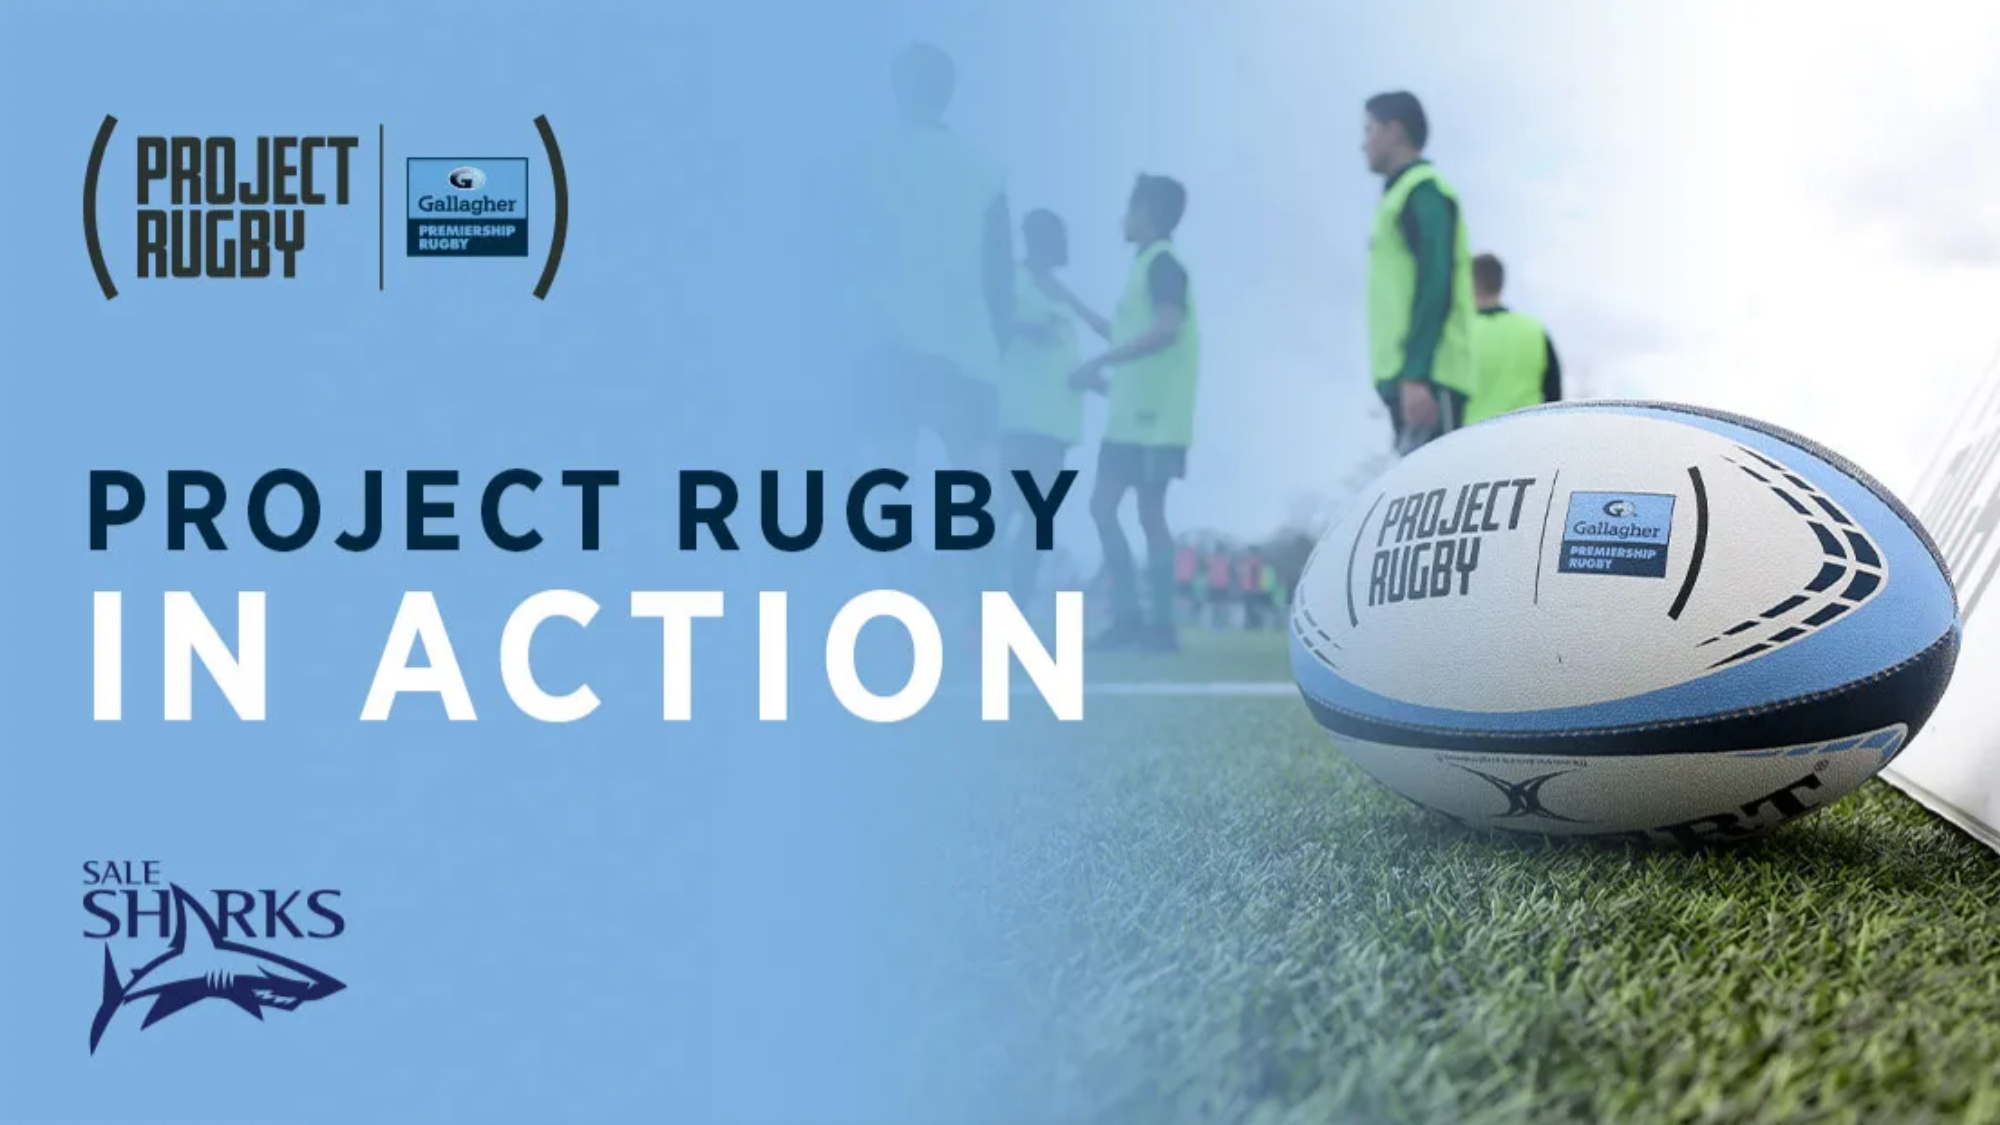 Project Rugby changed my life – and helped me continue to support my family too: Jamie's story